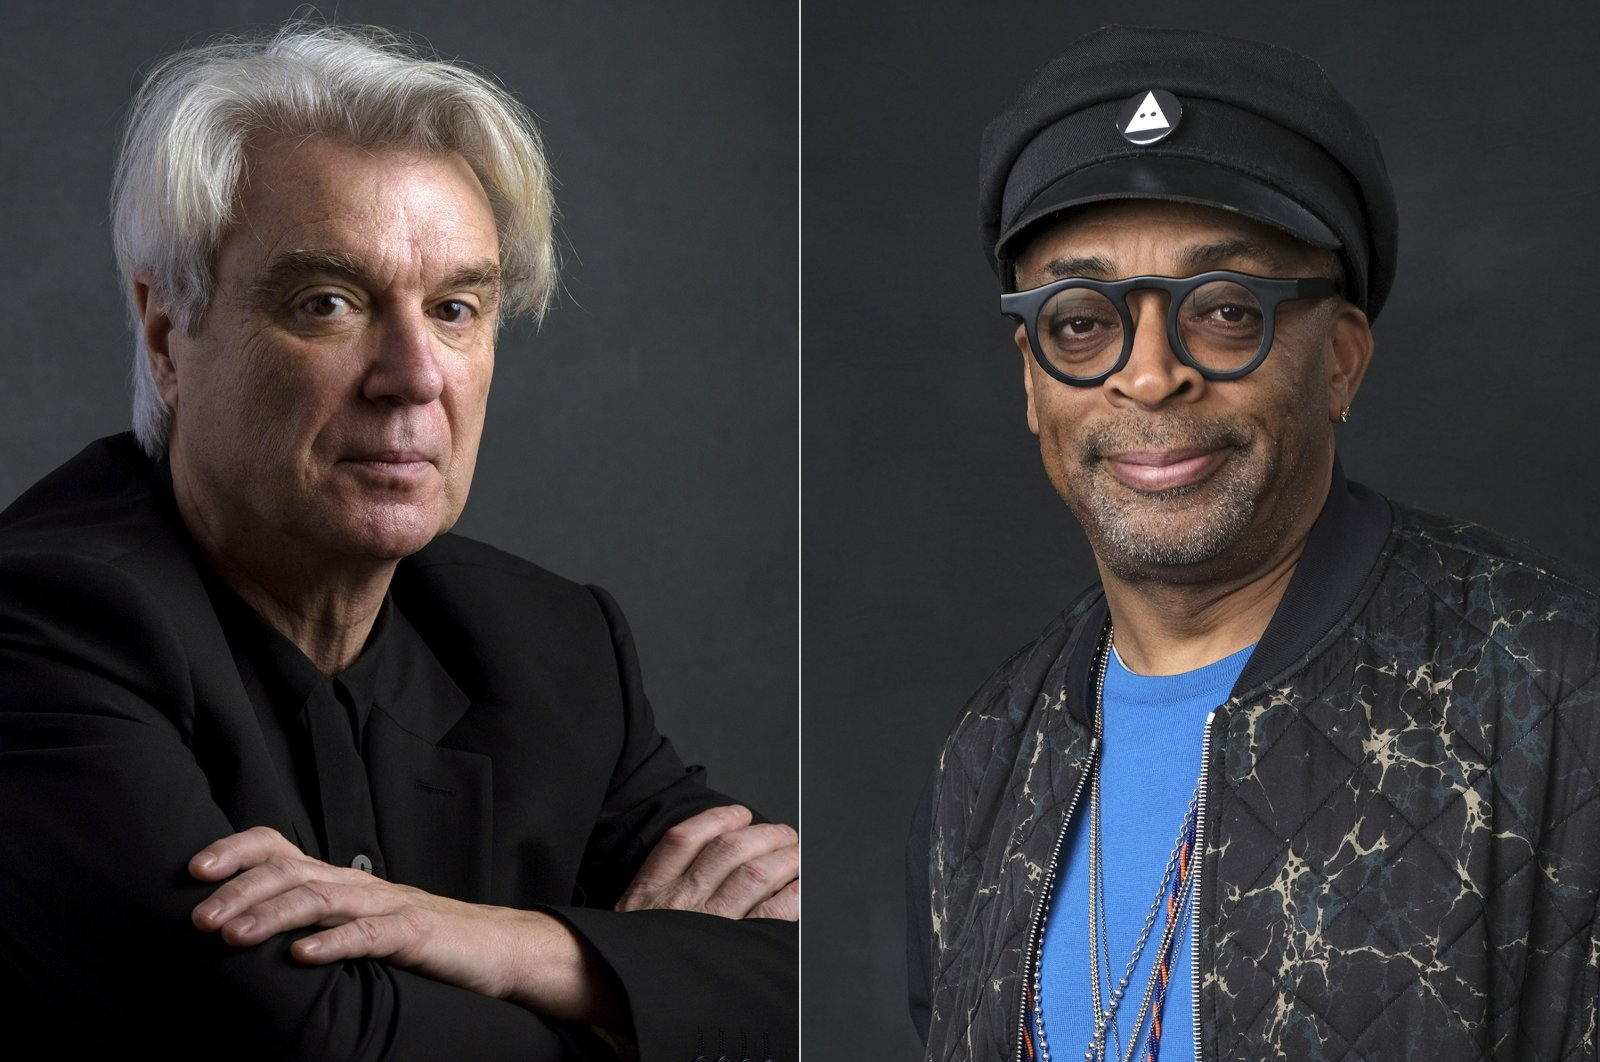 This combination photo shows musician David Byrne, left, and director Spike Lee. (AP Photo)